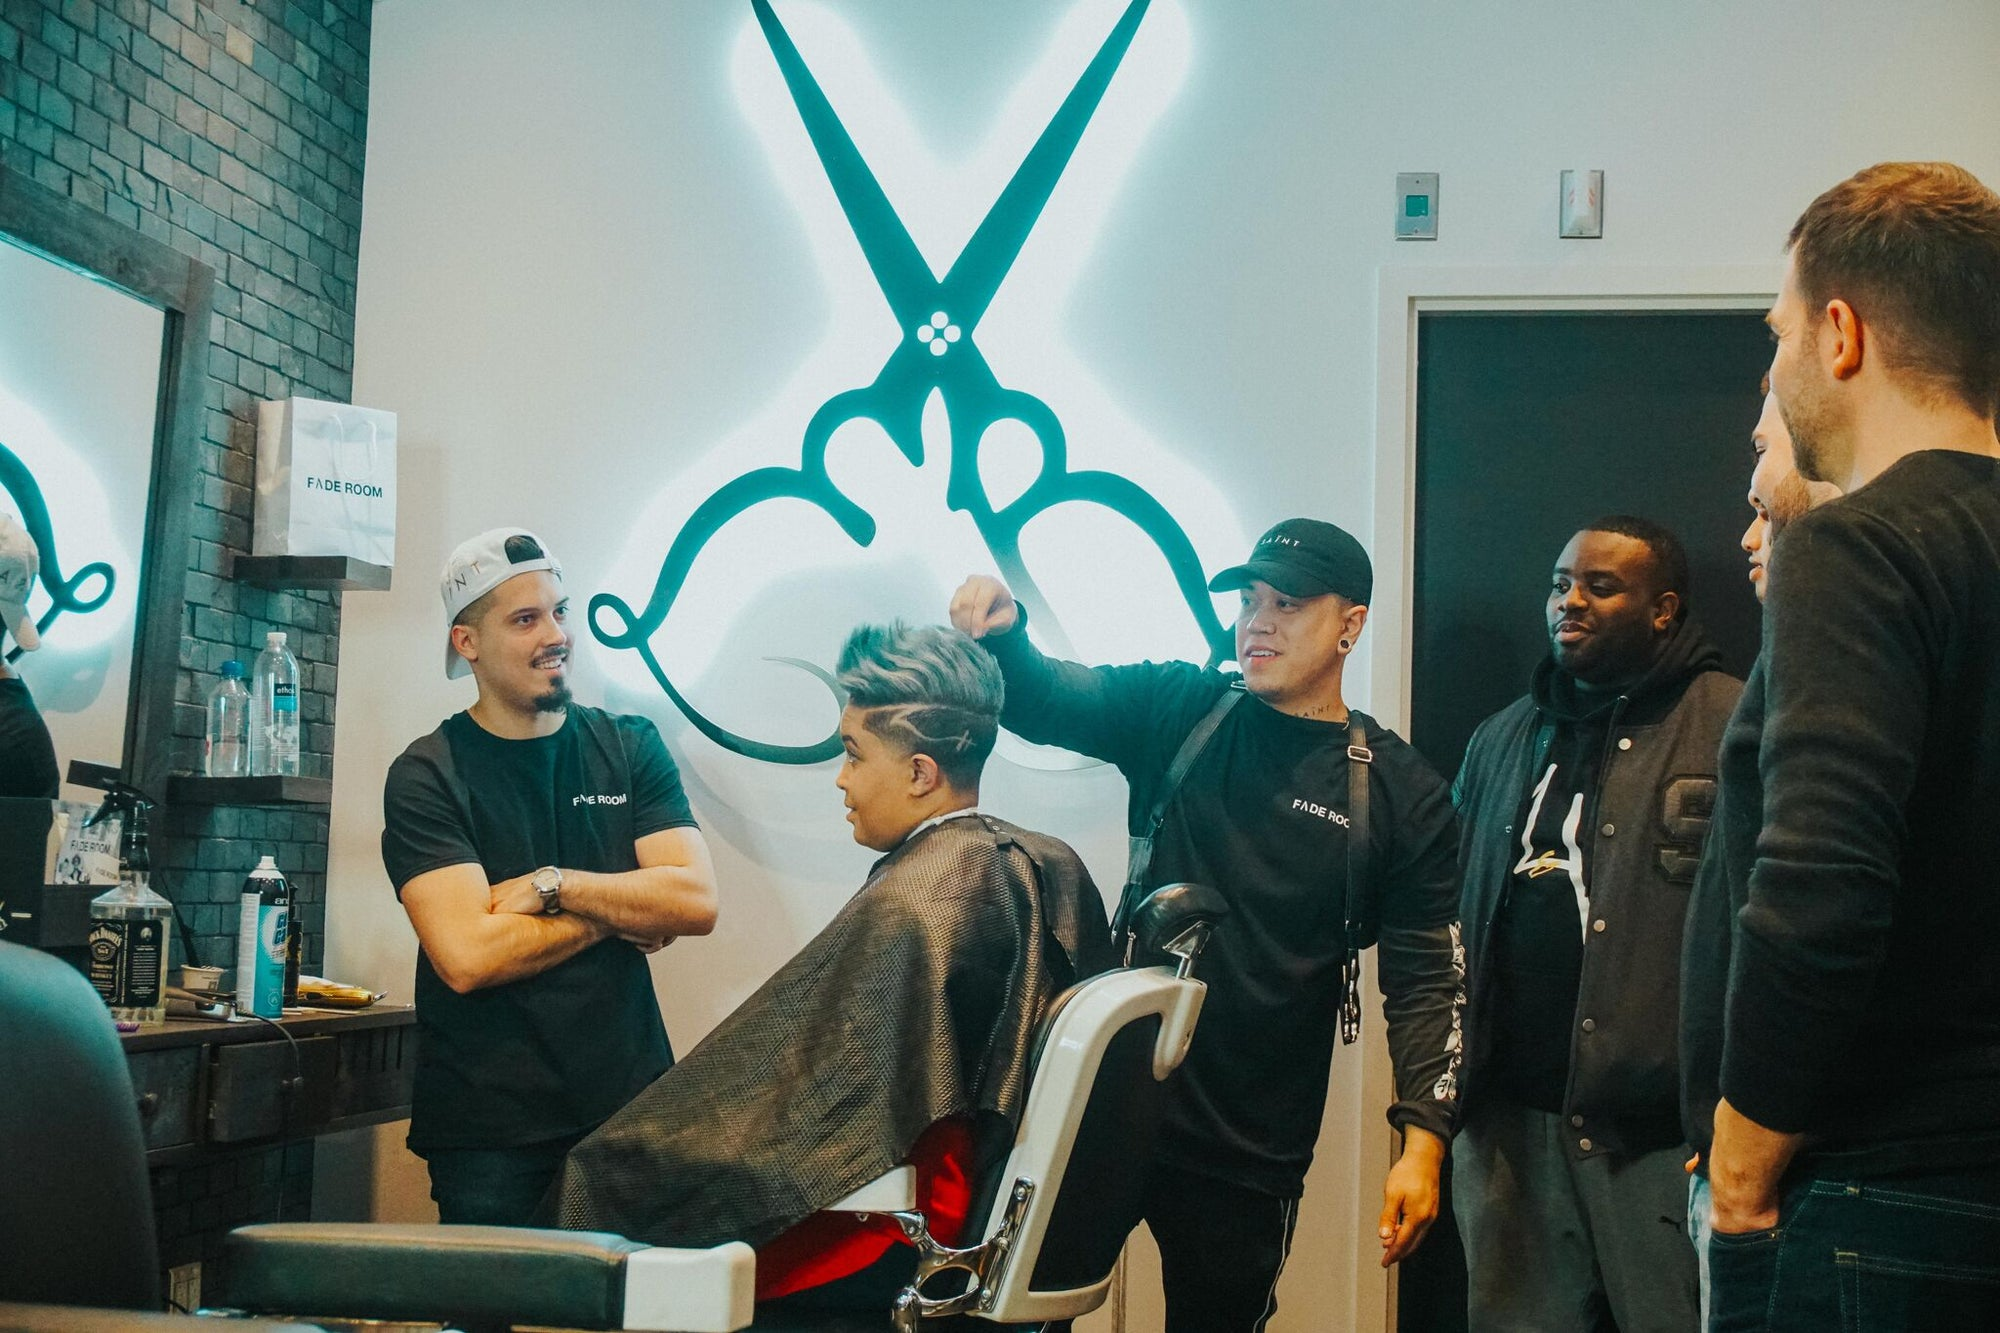 Claudio the barber and Famos host a look and learn barber class, at Fade Room Toronto